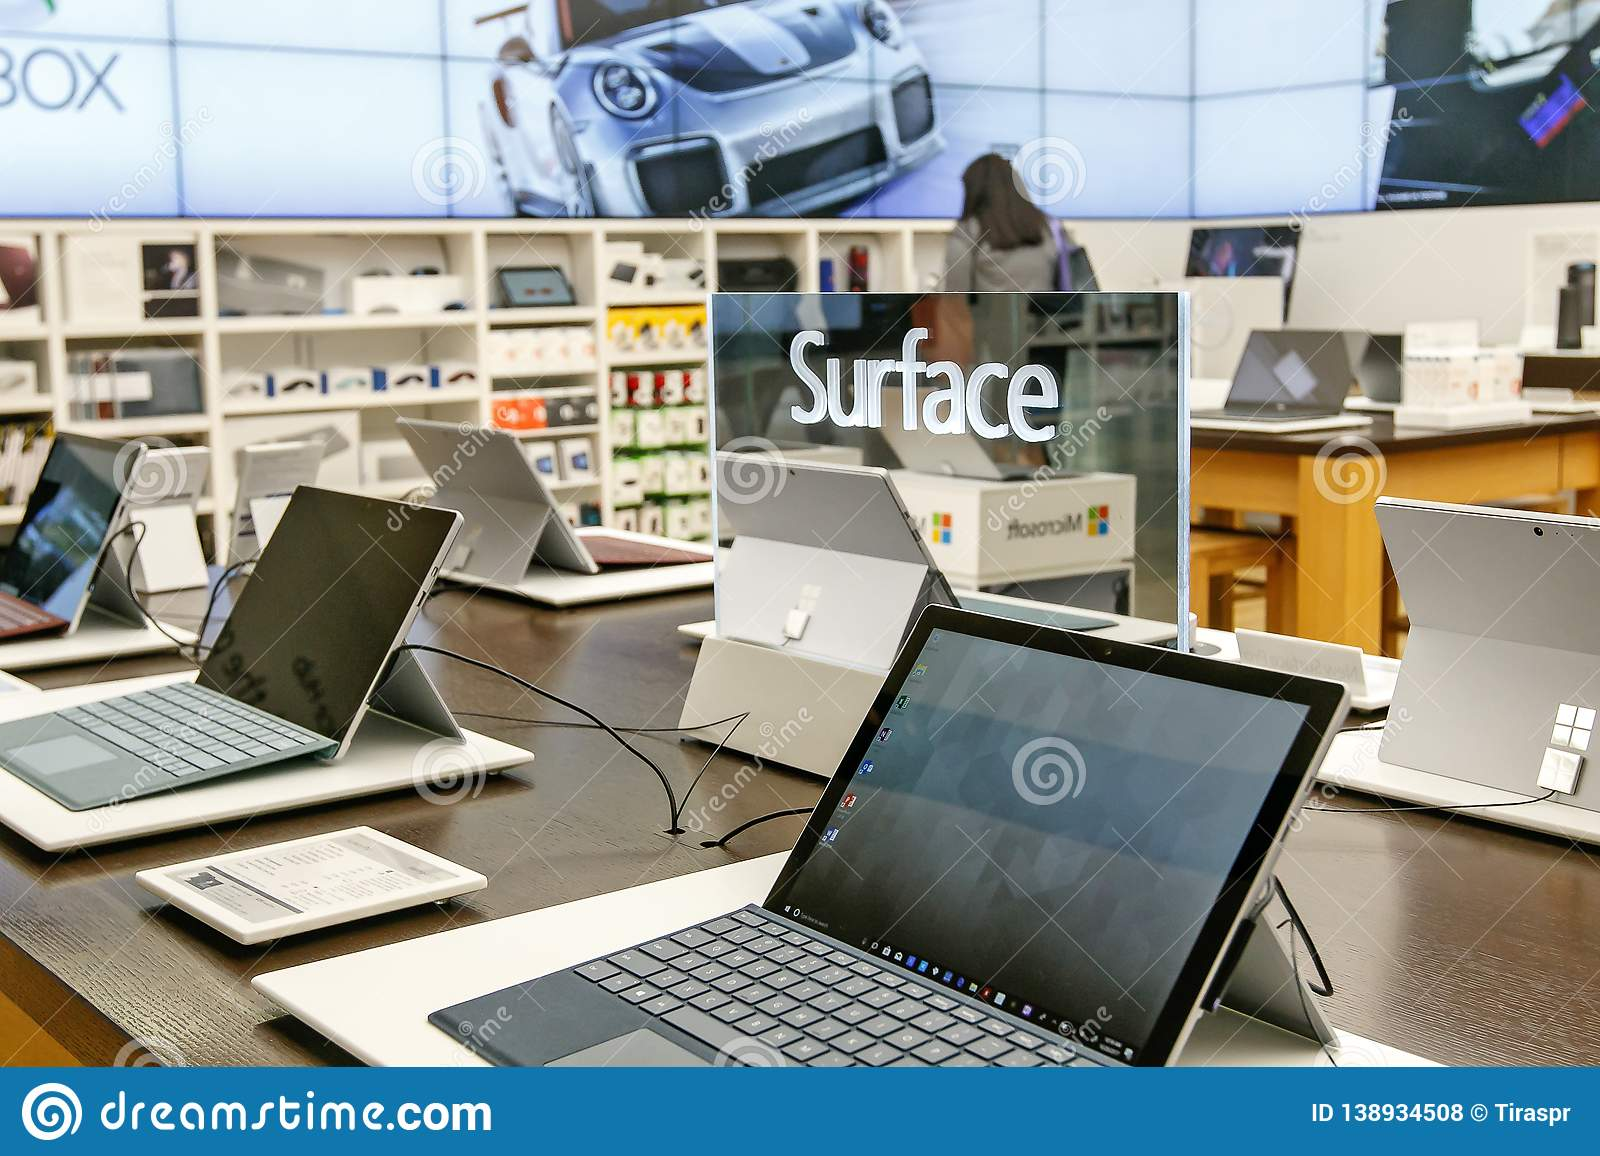 3f4cc2c3902 Variety of laptops running Windows Surface for sale at a Microsoft store in Prudential  Center in Boston